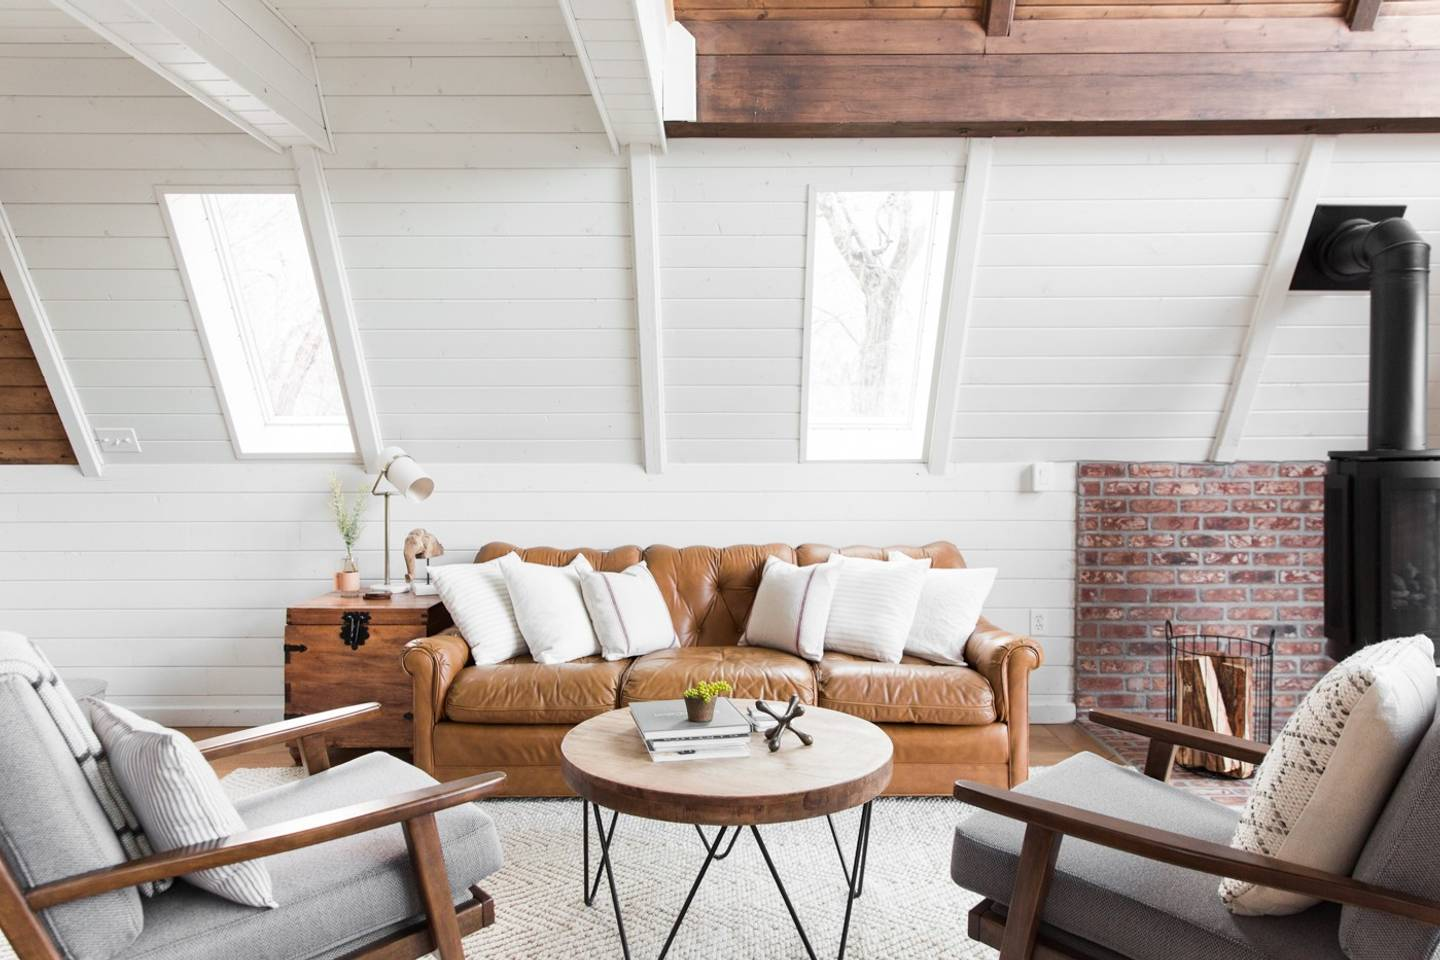 House Tour: An A Frame House Obsession